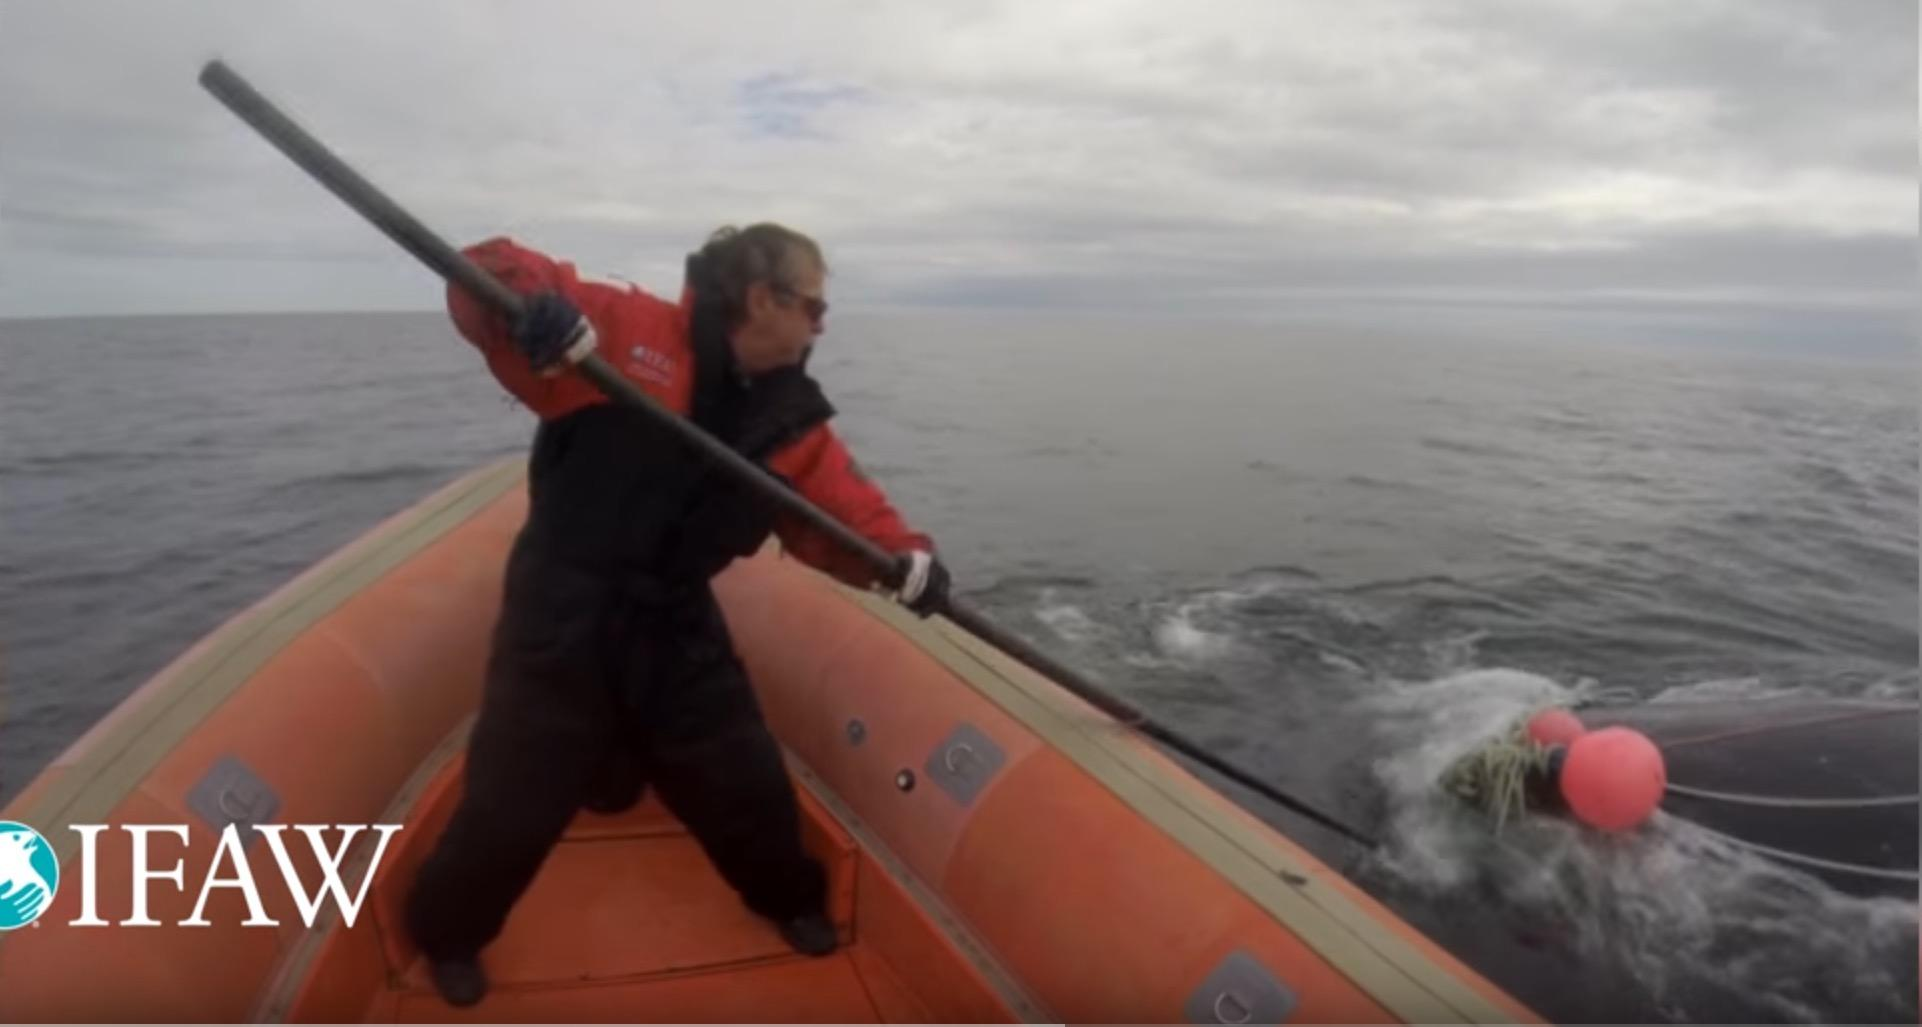 NOAA Suspends Whale Rescue Efforts After Rescuer's Death